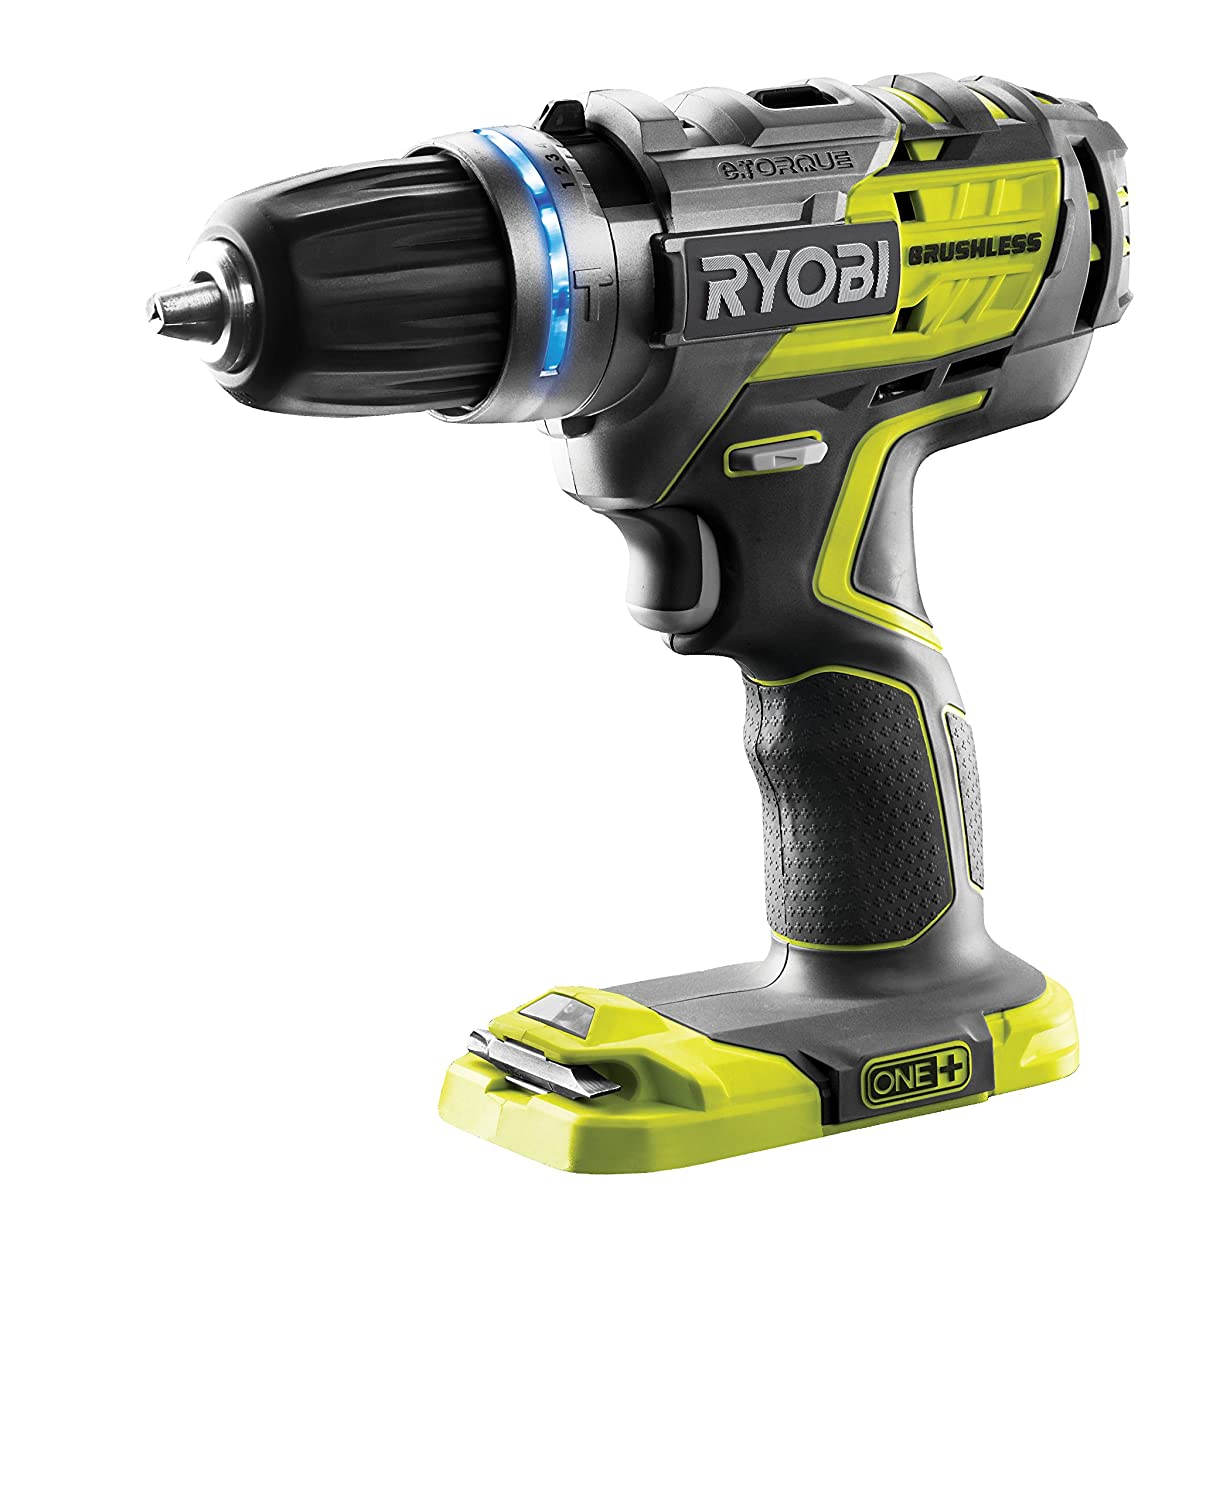 Ryobi R18PDBL-0 Perceuse à Percussion Électrique sans fil 18 volts Mandrin Autoserrant